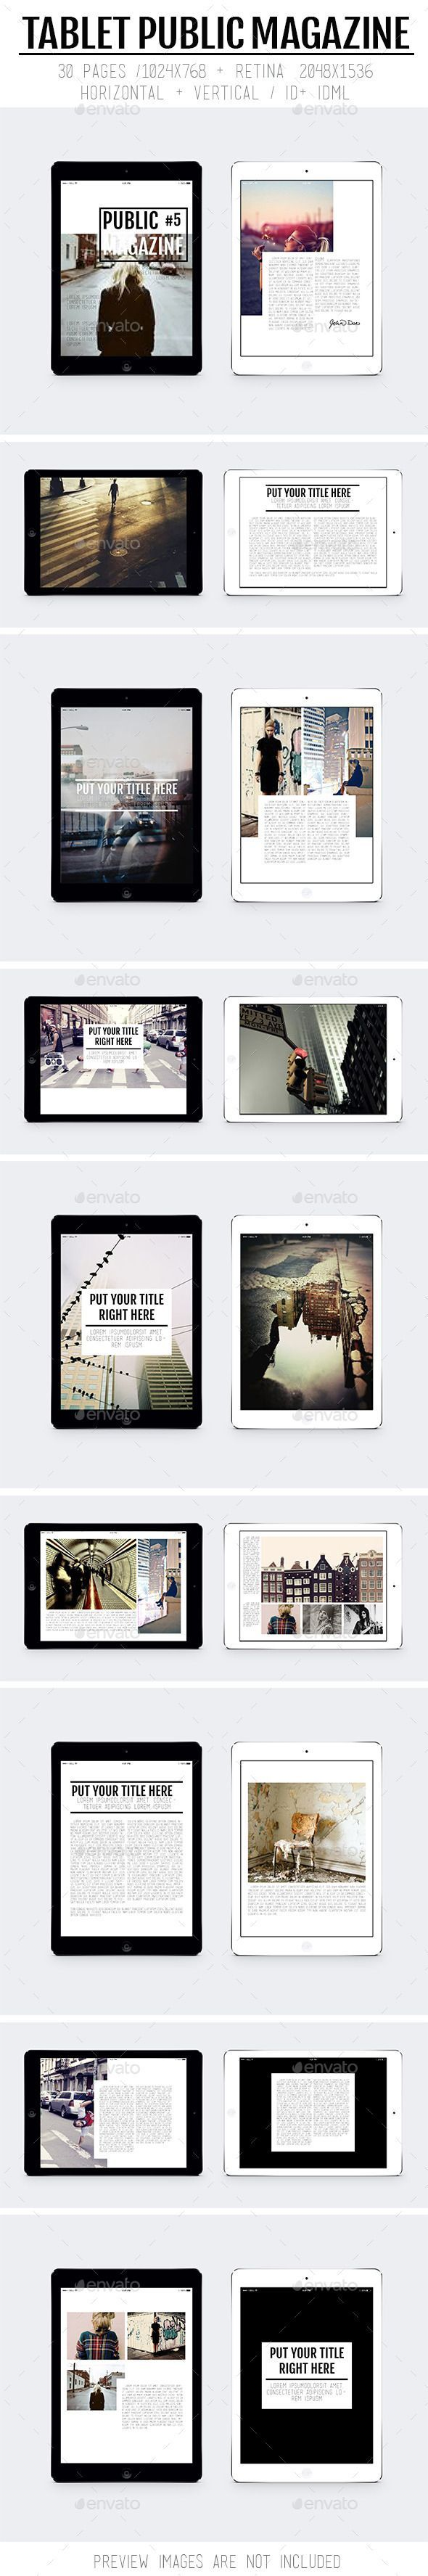 Tablet Public Magazine Template #design Download: http://graphicriver.net/item/tablet-public-magazine/9870326?ref=ksioks: